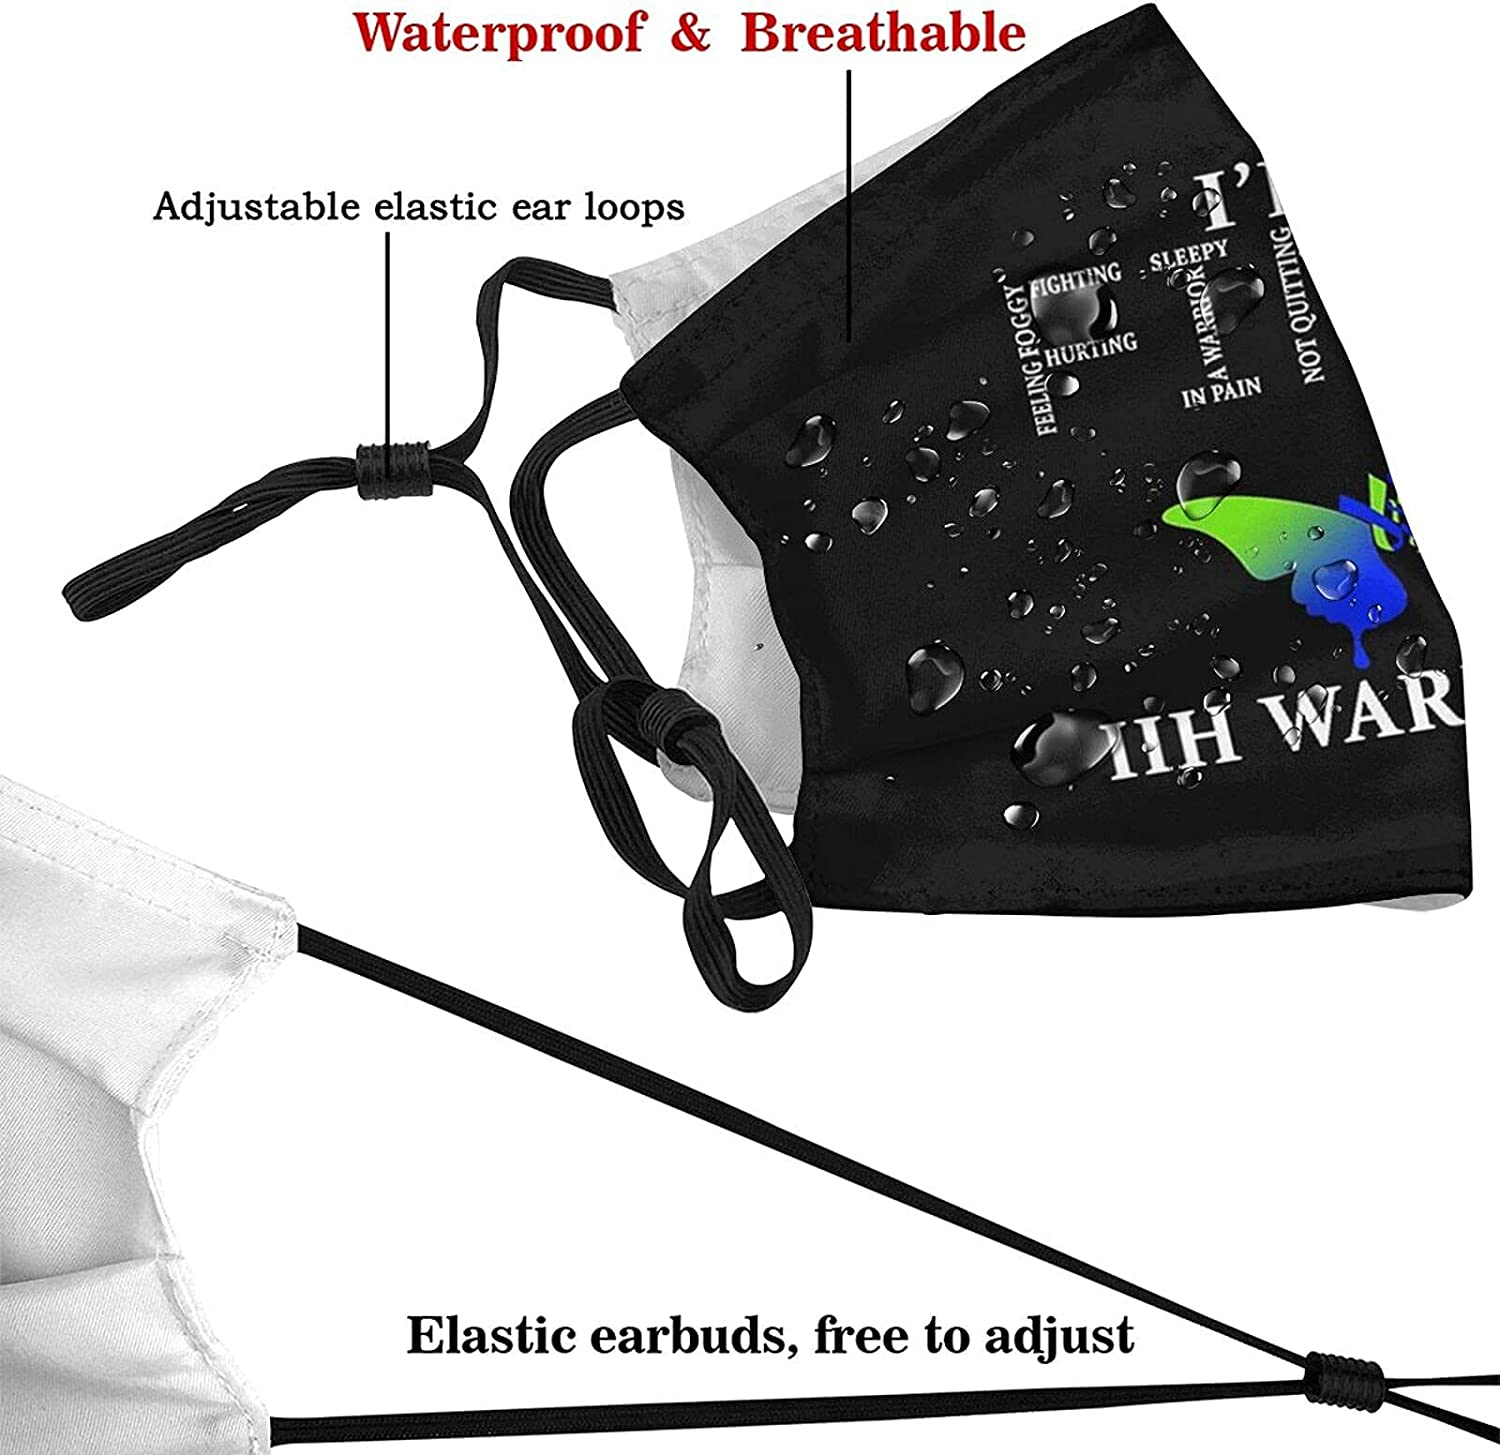 Iih Warrior Awareness Butterfly Face Mask, Adults Dustproof Windproof Breathable Bandanas with Activated Carbon Filter Washable Balaclava